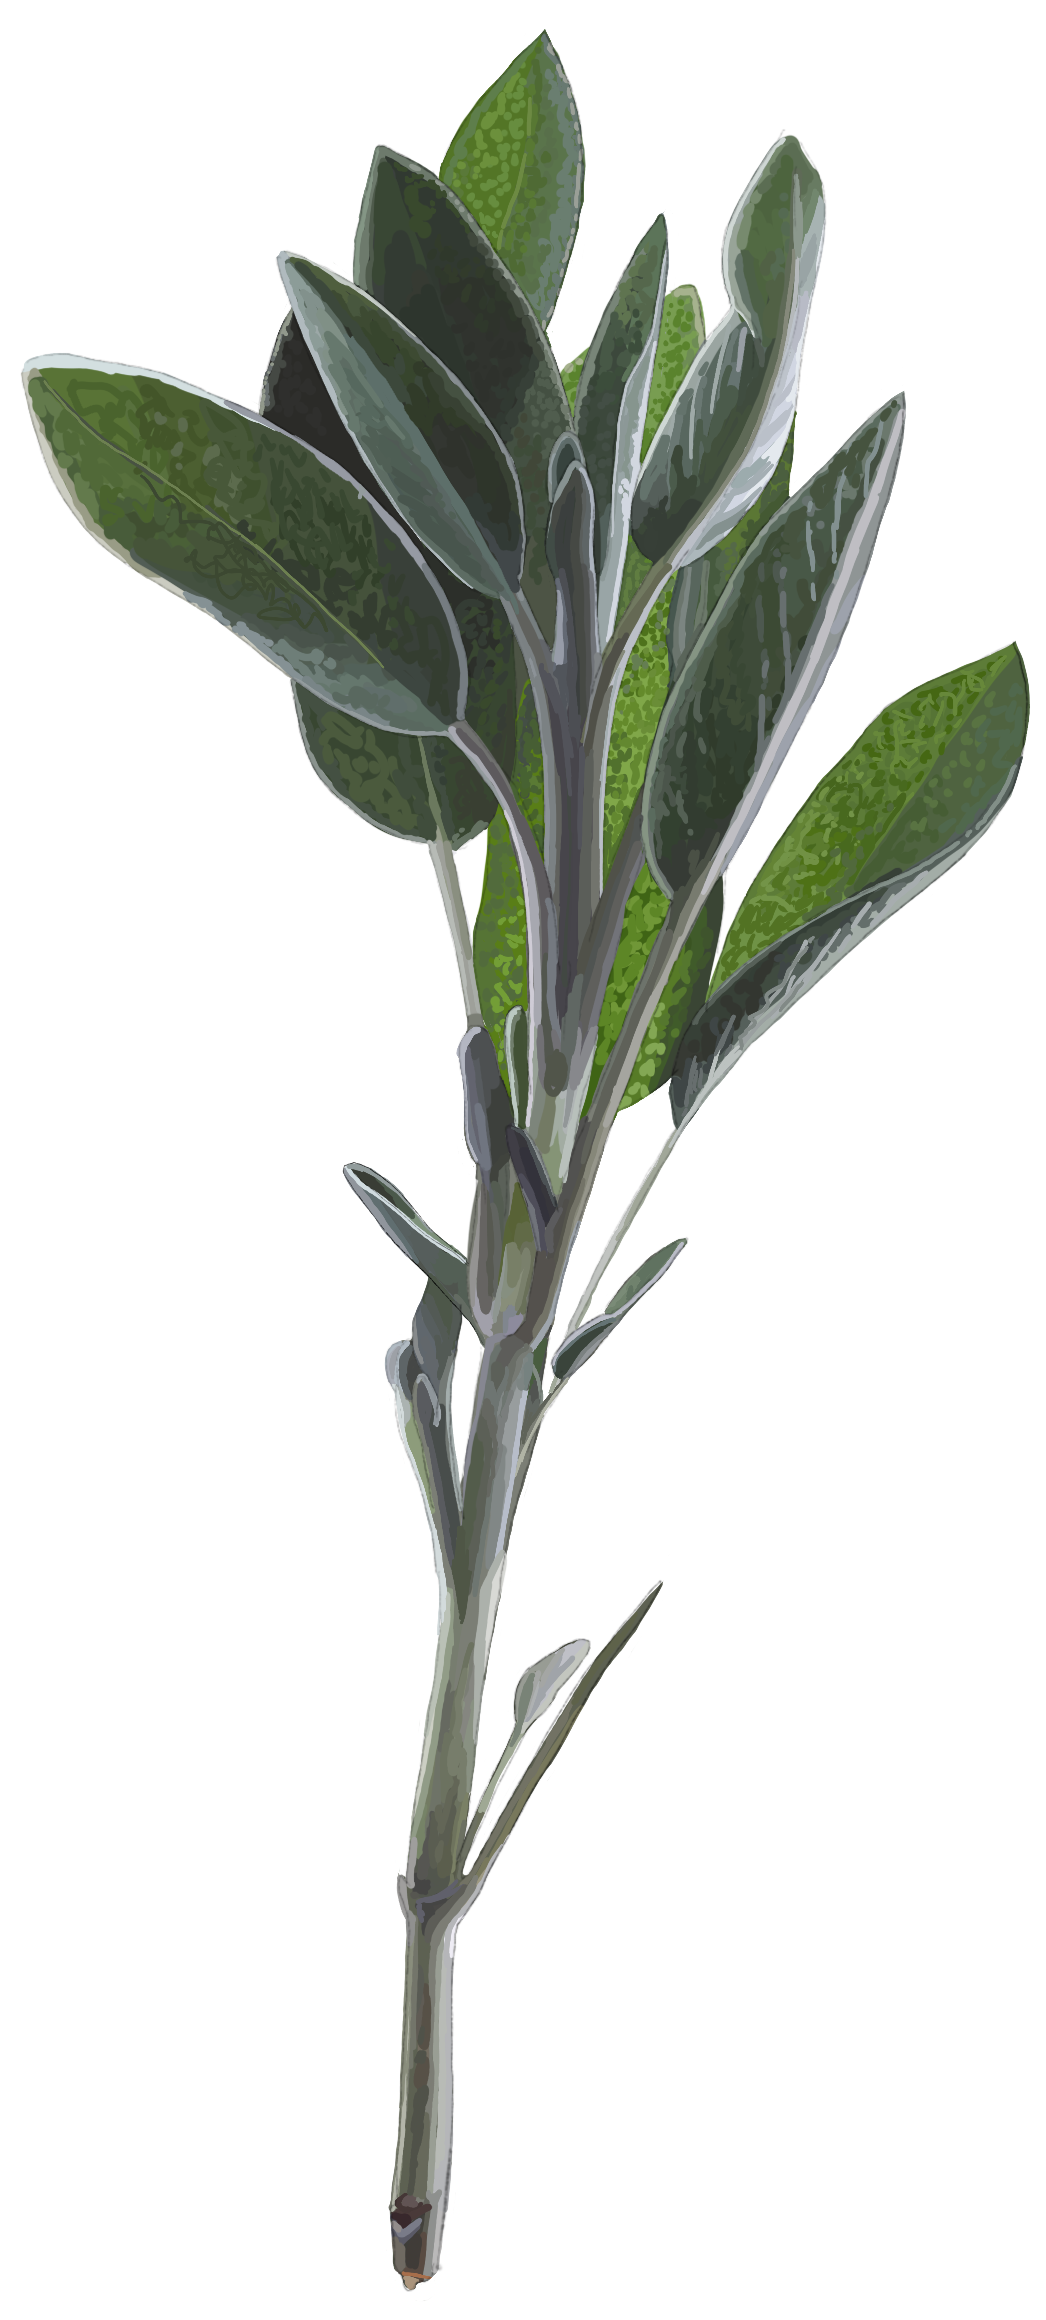 Sage. Salvia officinalis